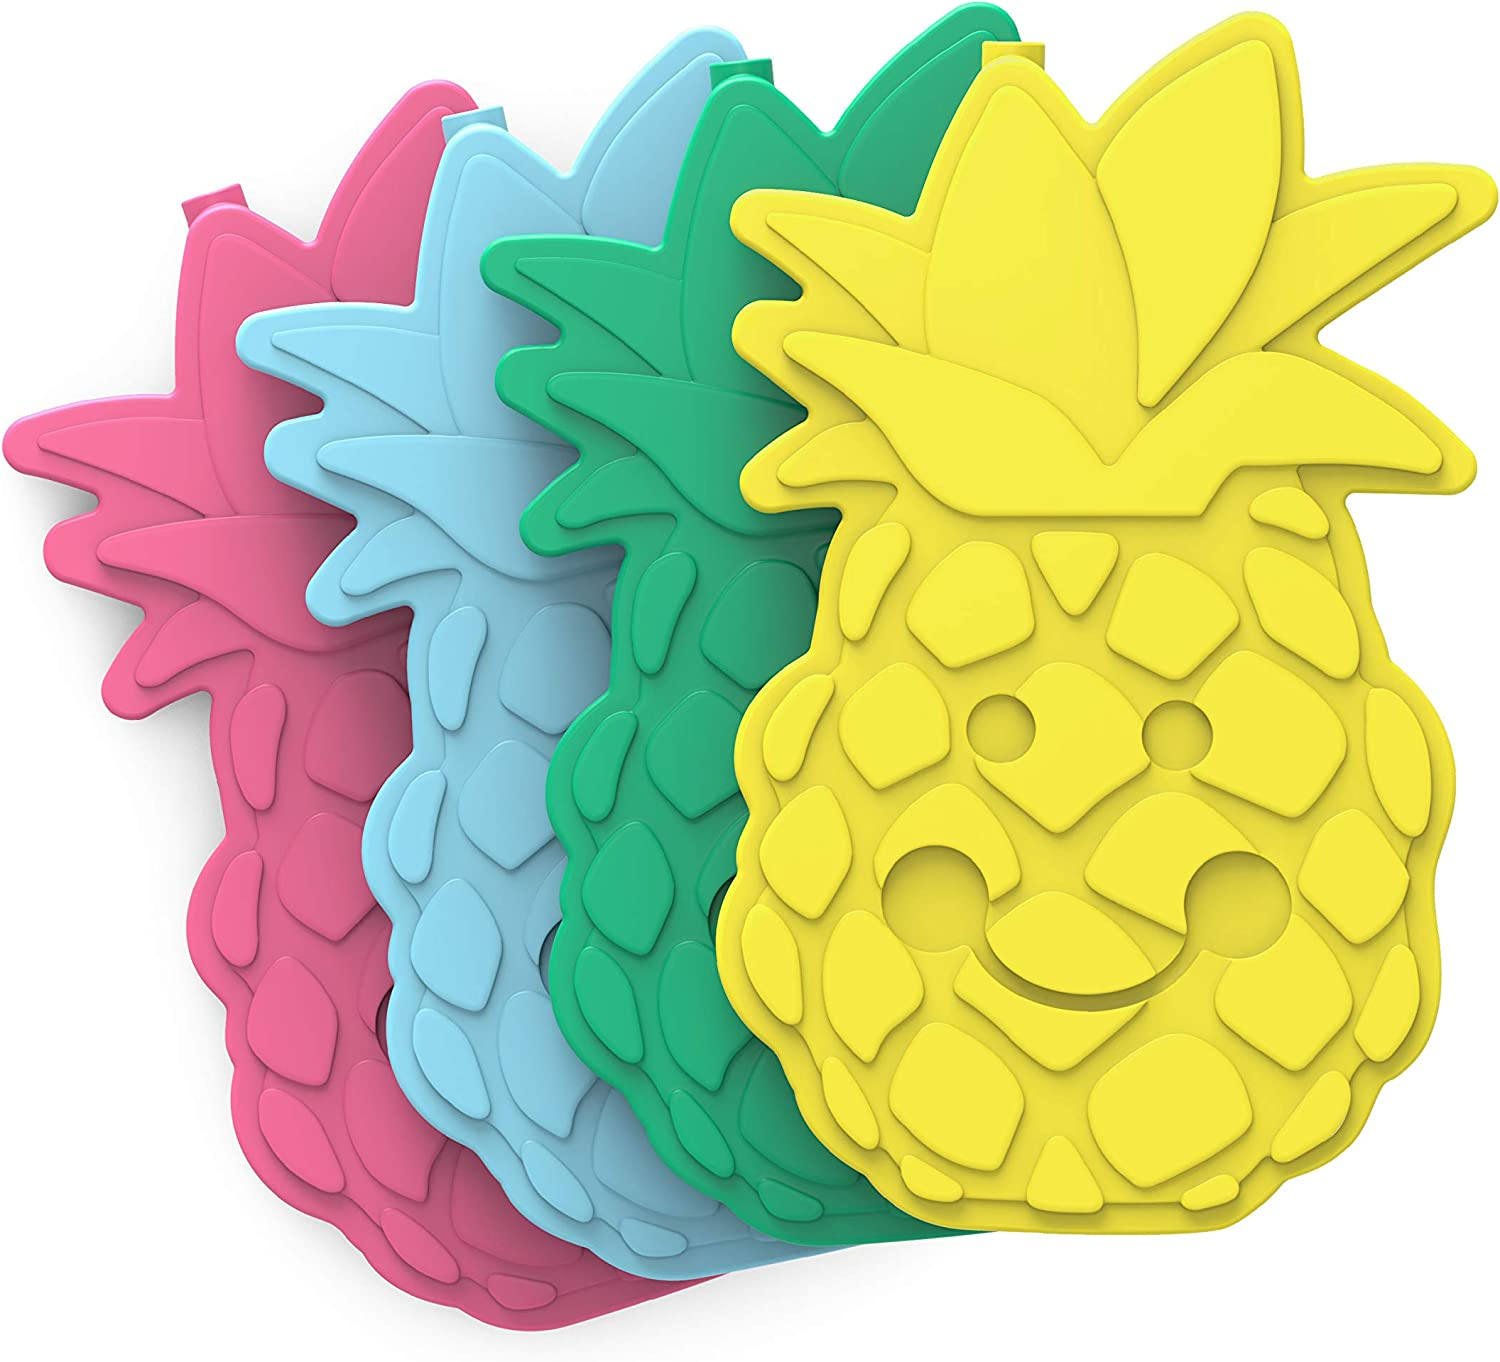 Bentgo Buddies Reusable Ice Packs - Slim Ice Packs for Lunch Boxes, Lunch Bags and Coolers - Multicolored 4 Pack (Pineapple)